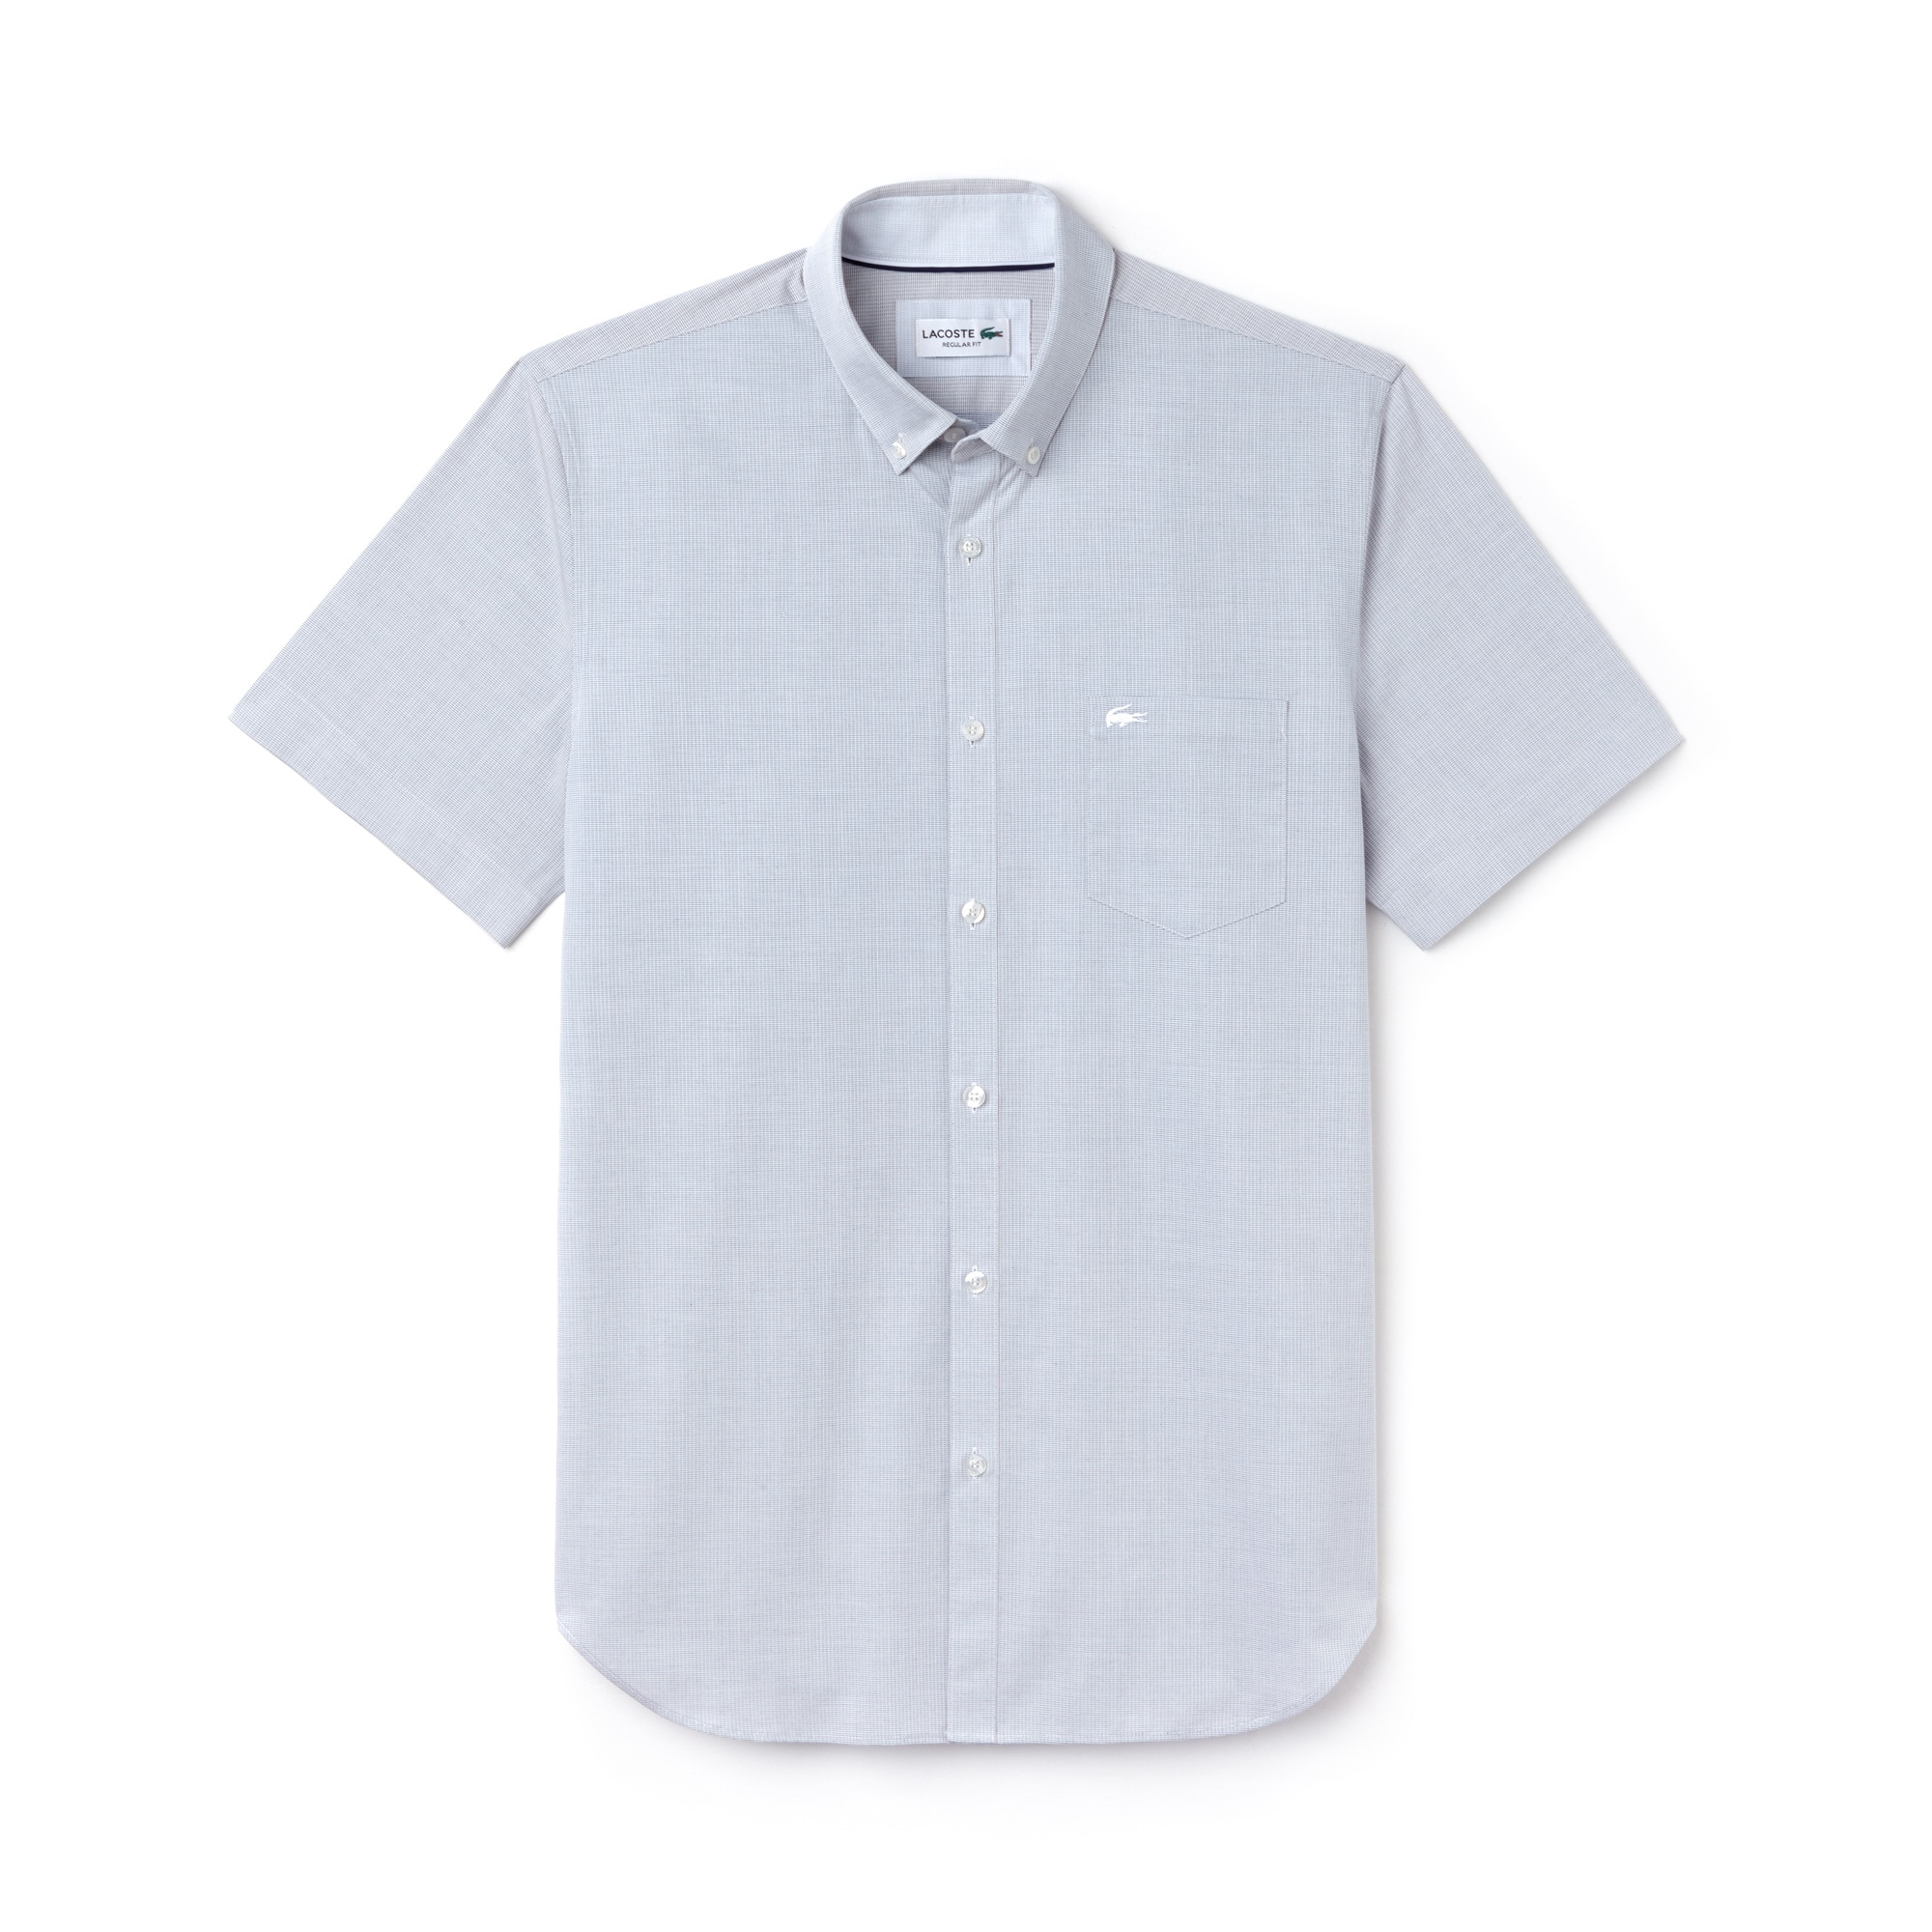 Camicia regular fit a maniche corte in popeline a rilievi